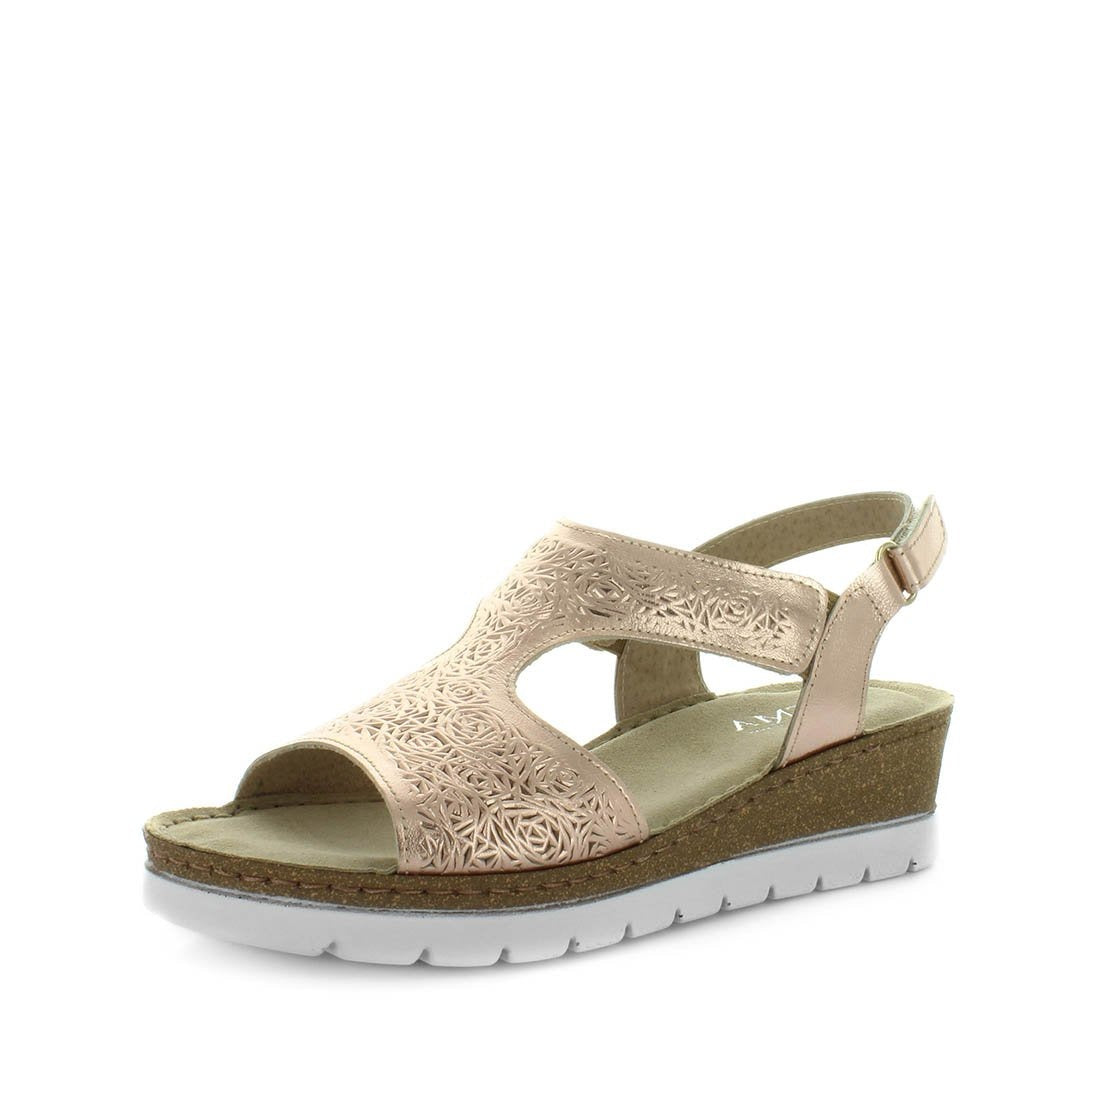 Atema sandal, wedges, womens wedges, ladies wedge sandal, leather wedge, leather sandal with buckle, back strap wedge, lamas